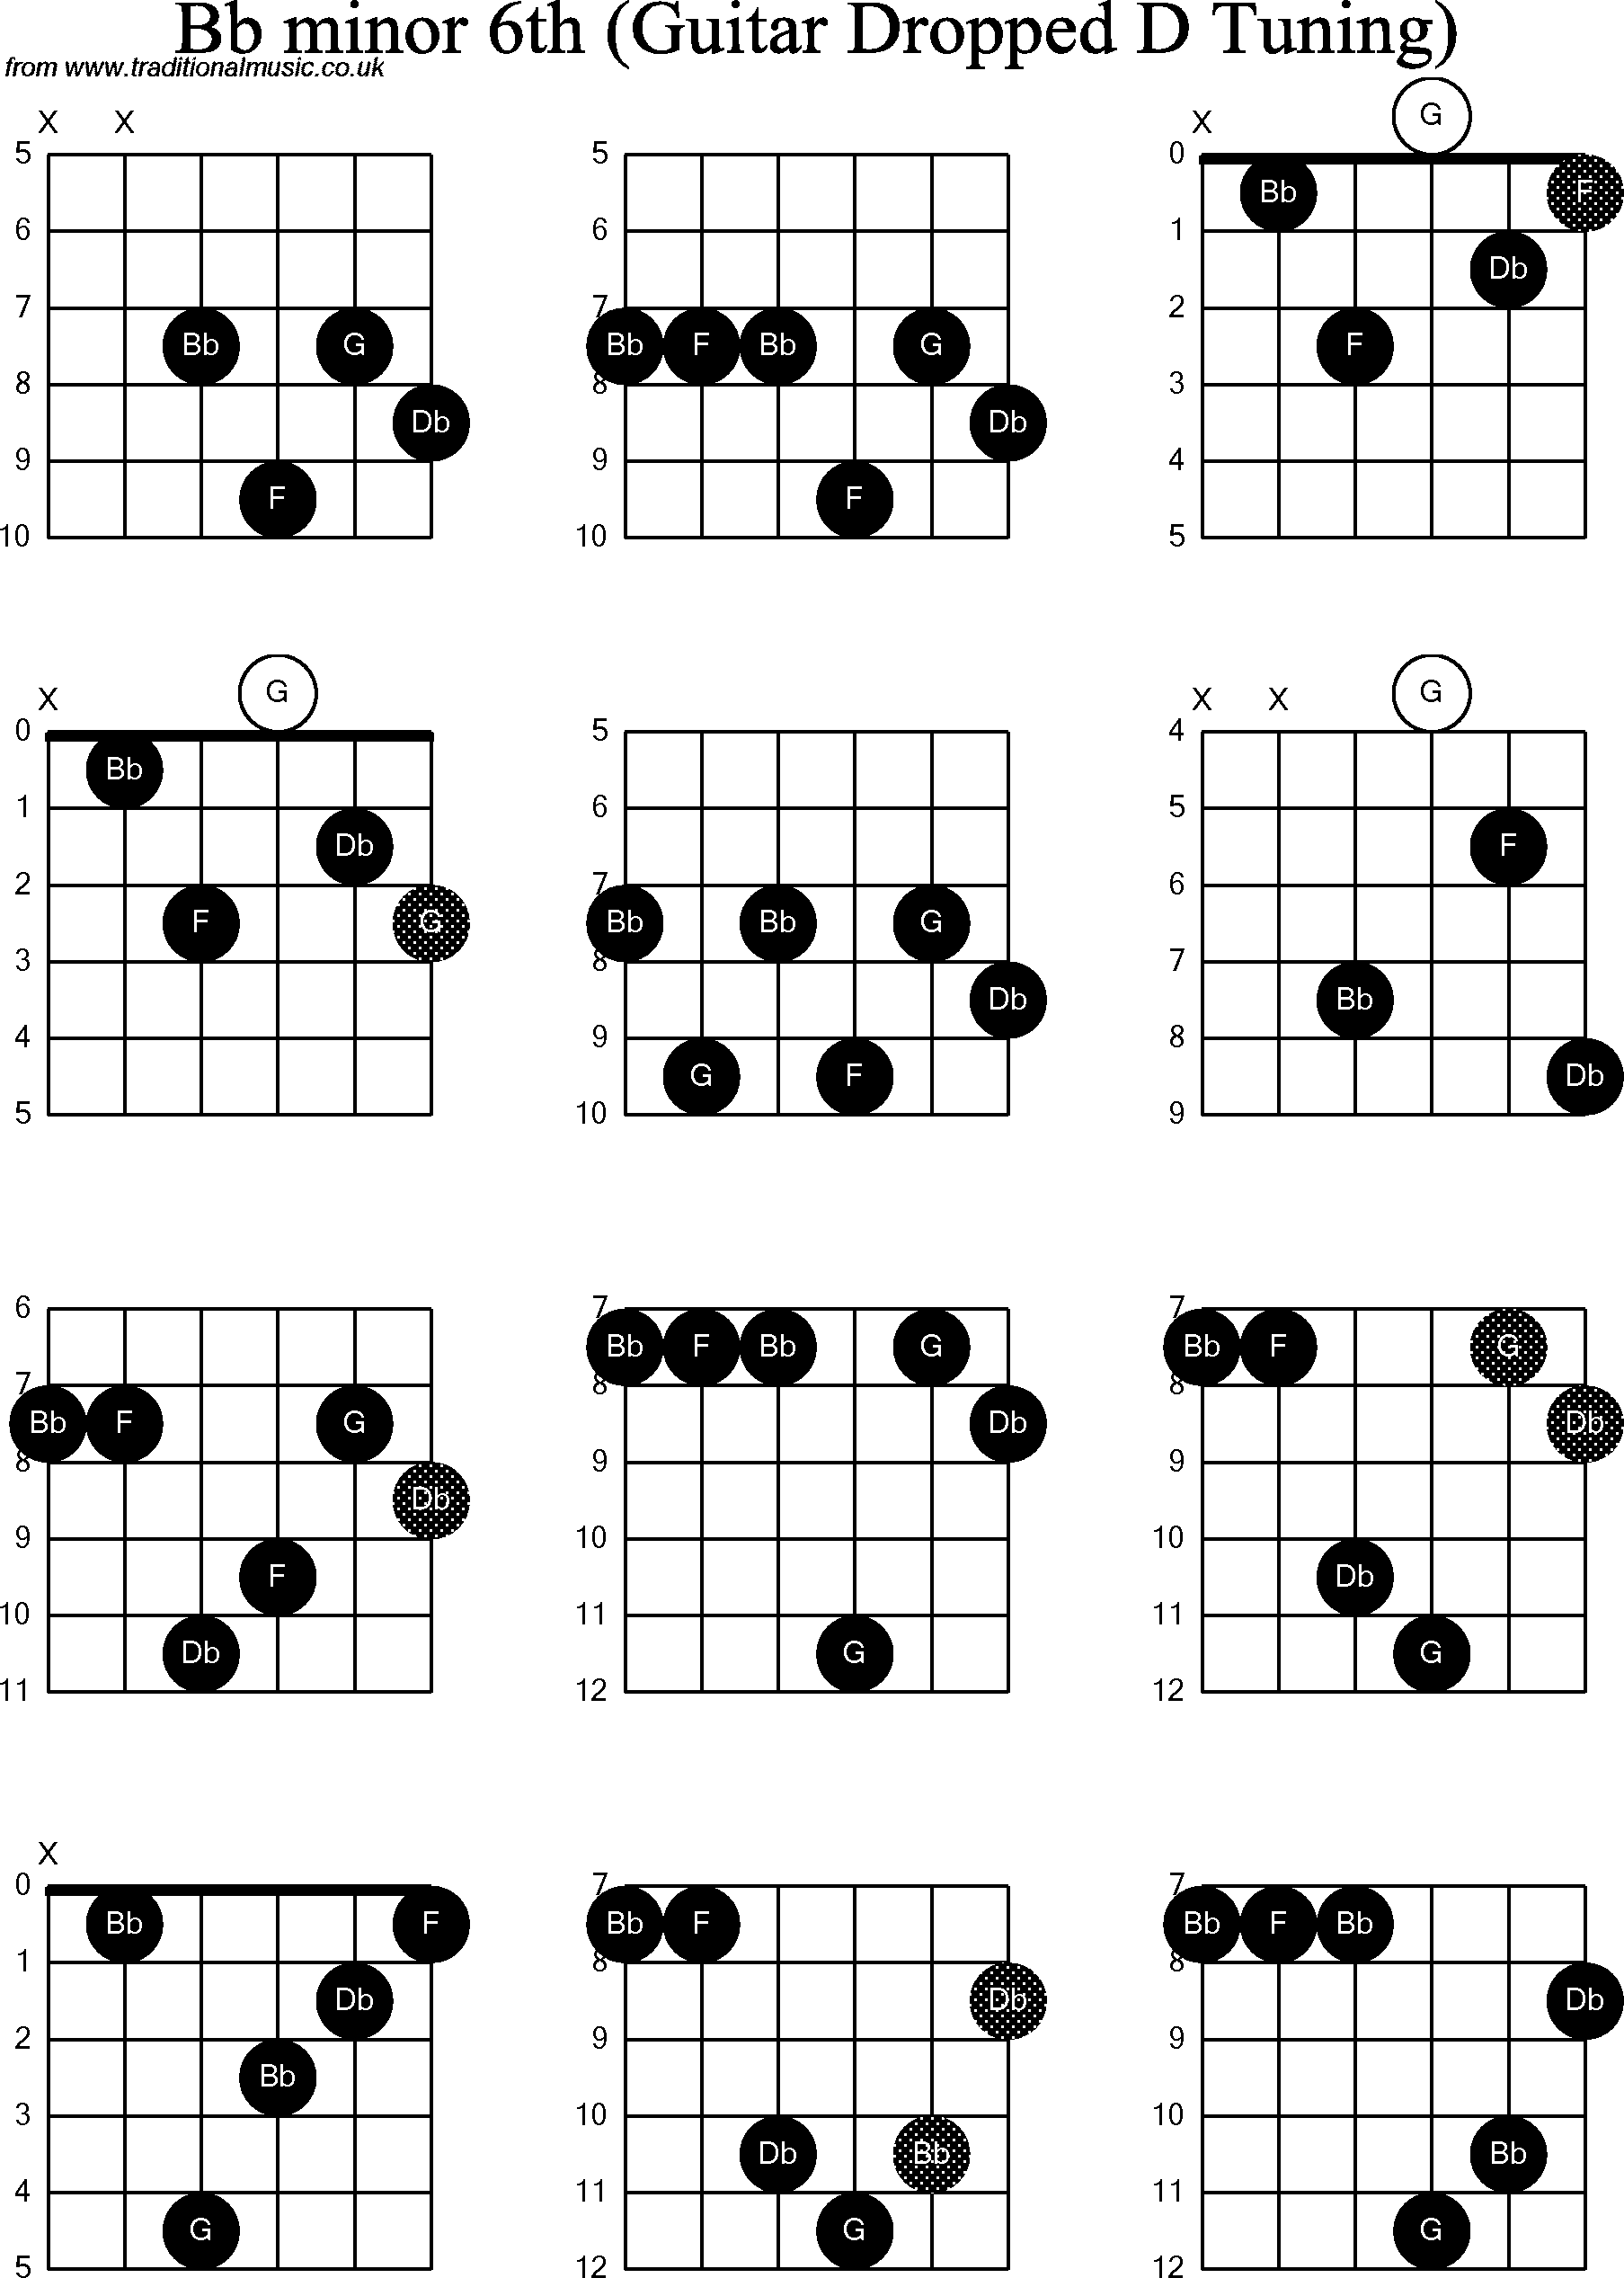 Chord diagrams for dropped d guitardadgbe bb minor6th chord diagrams for dropped d guitardadgbe bb minor6th hexwebz Image collections